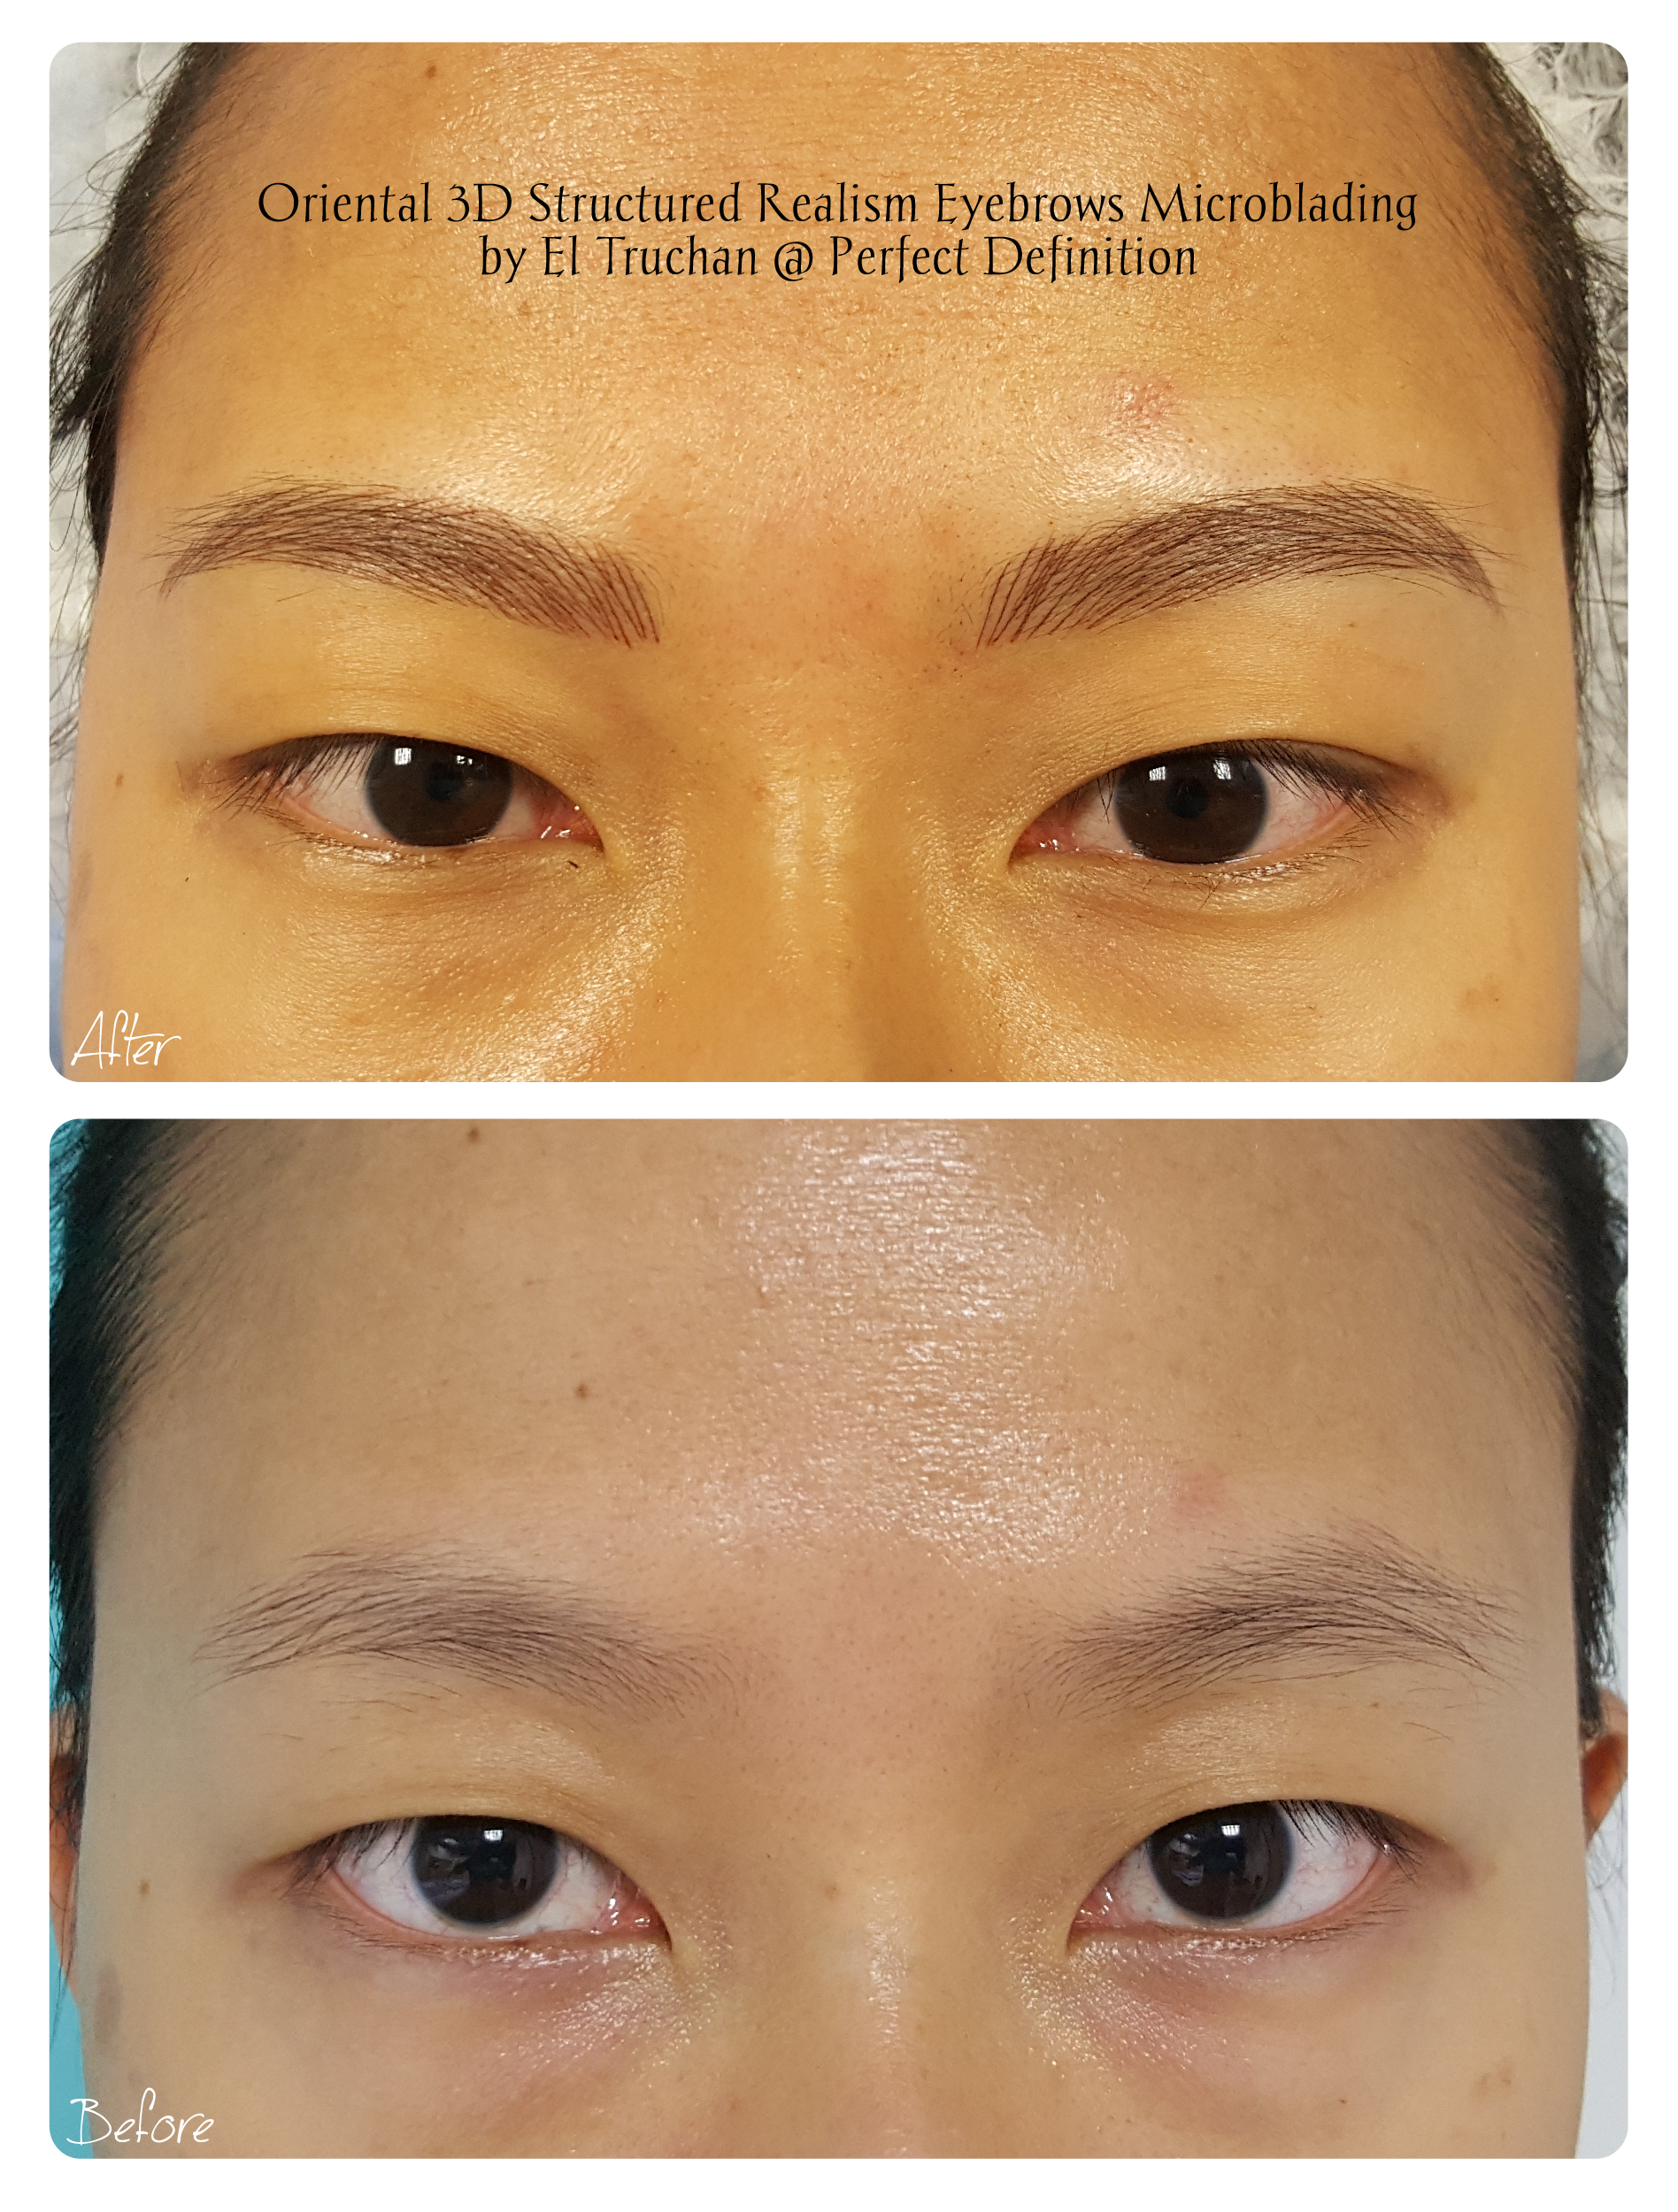 Oriental 3D Structured Realism Eyebrows